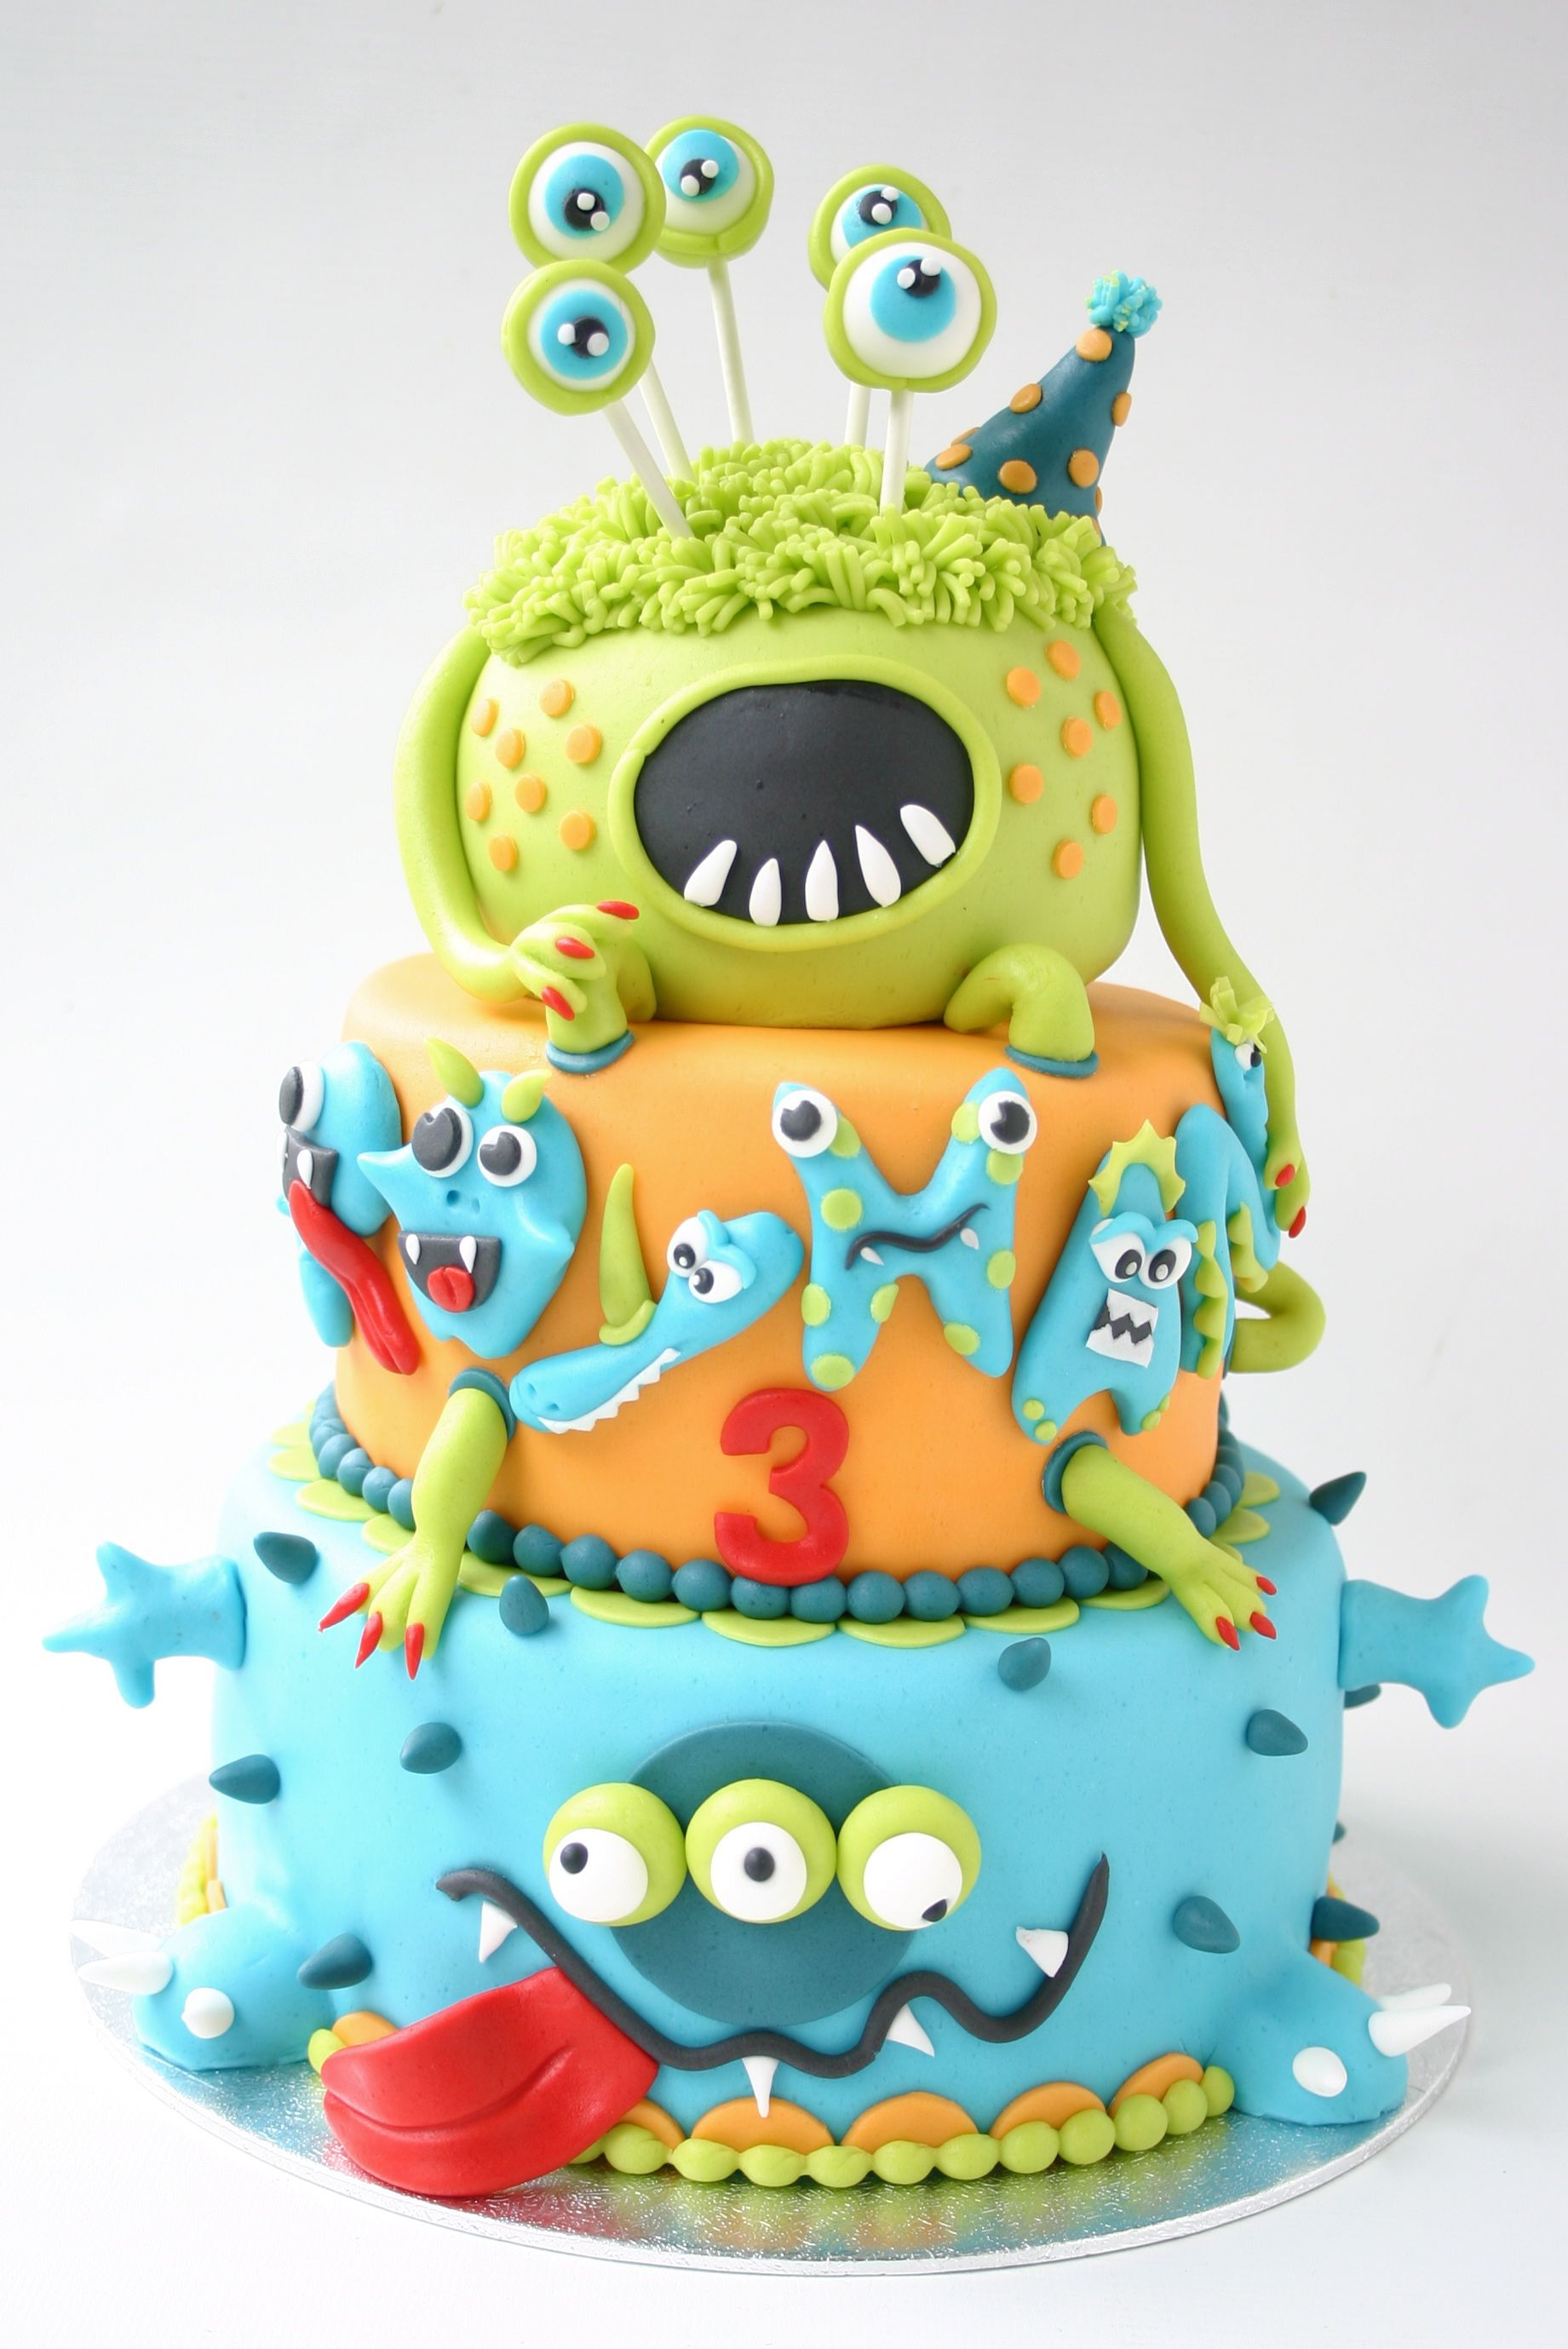 cute monster cake A monster for a 3 year old must be not so scary